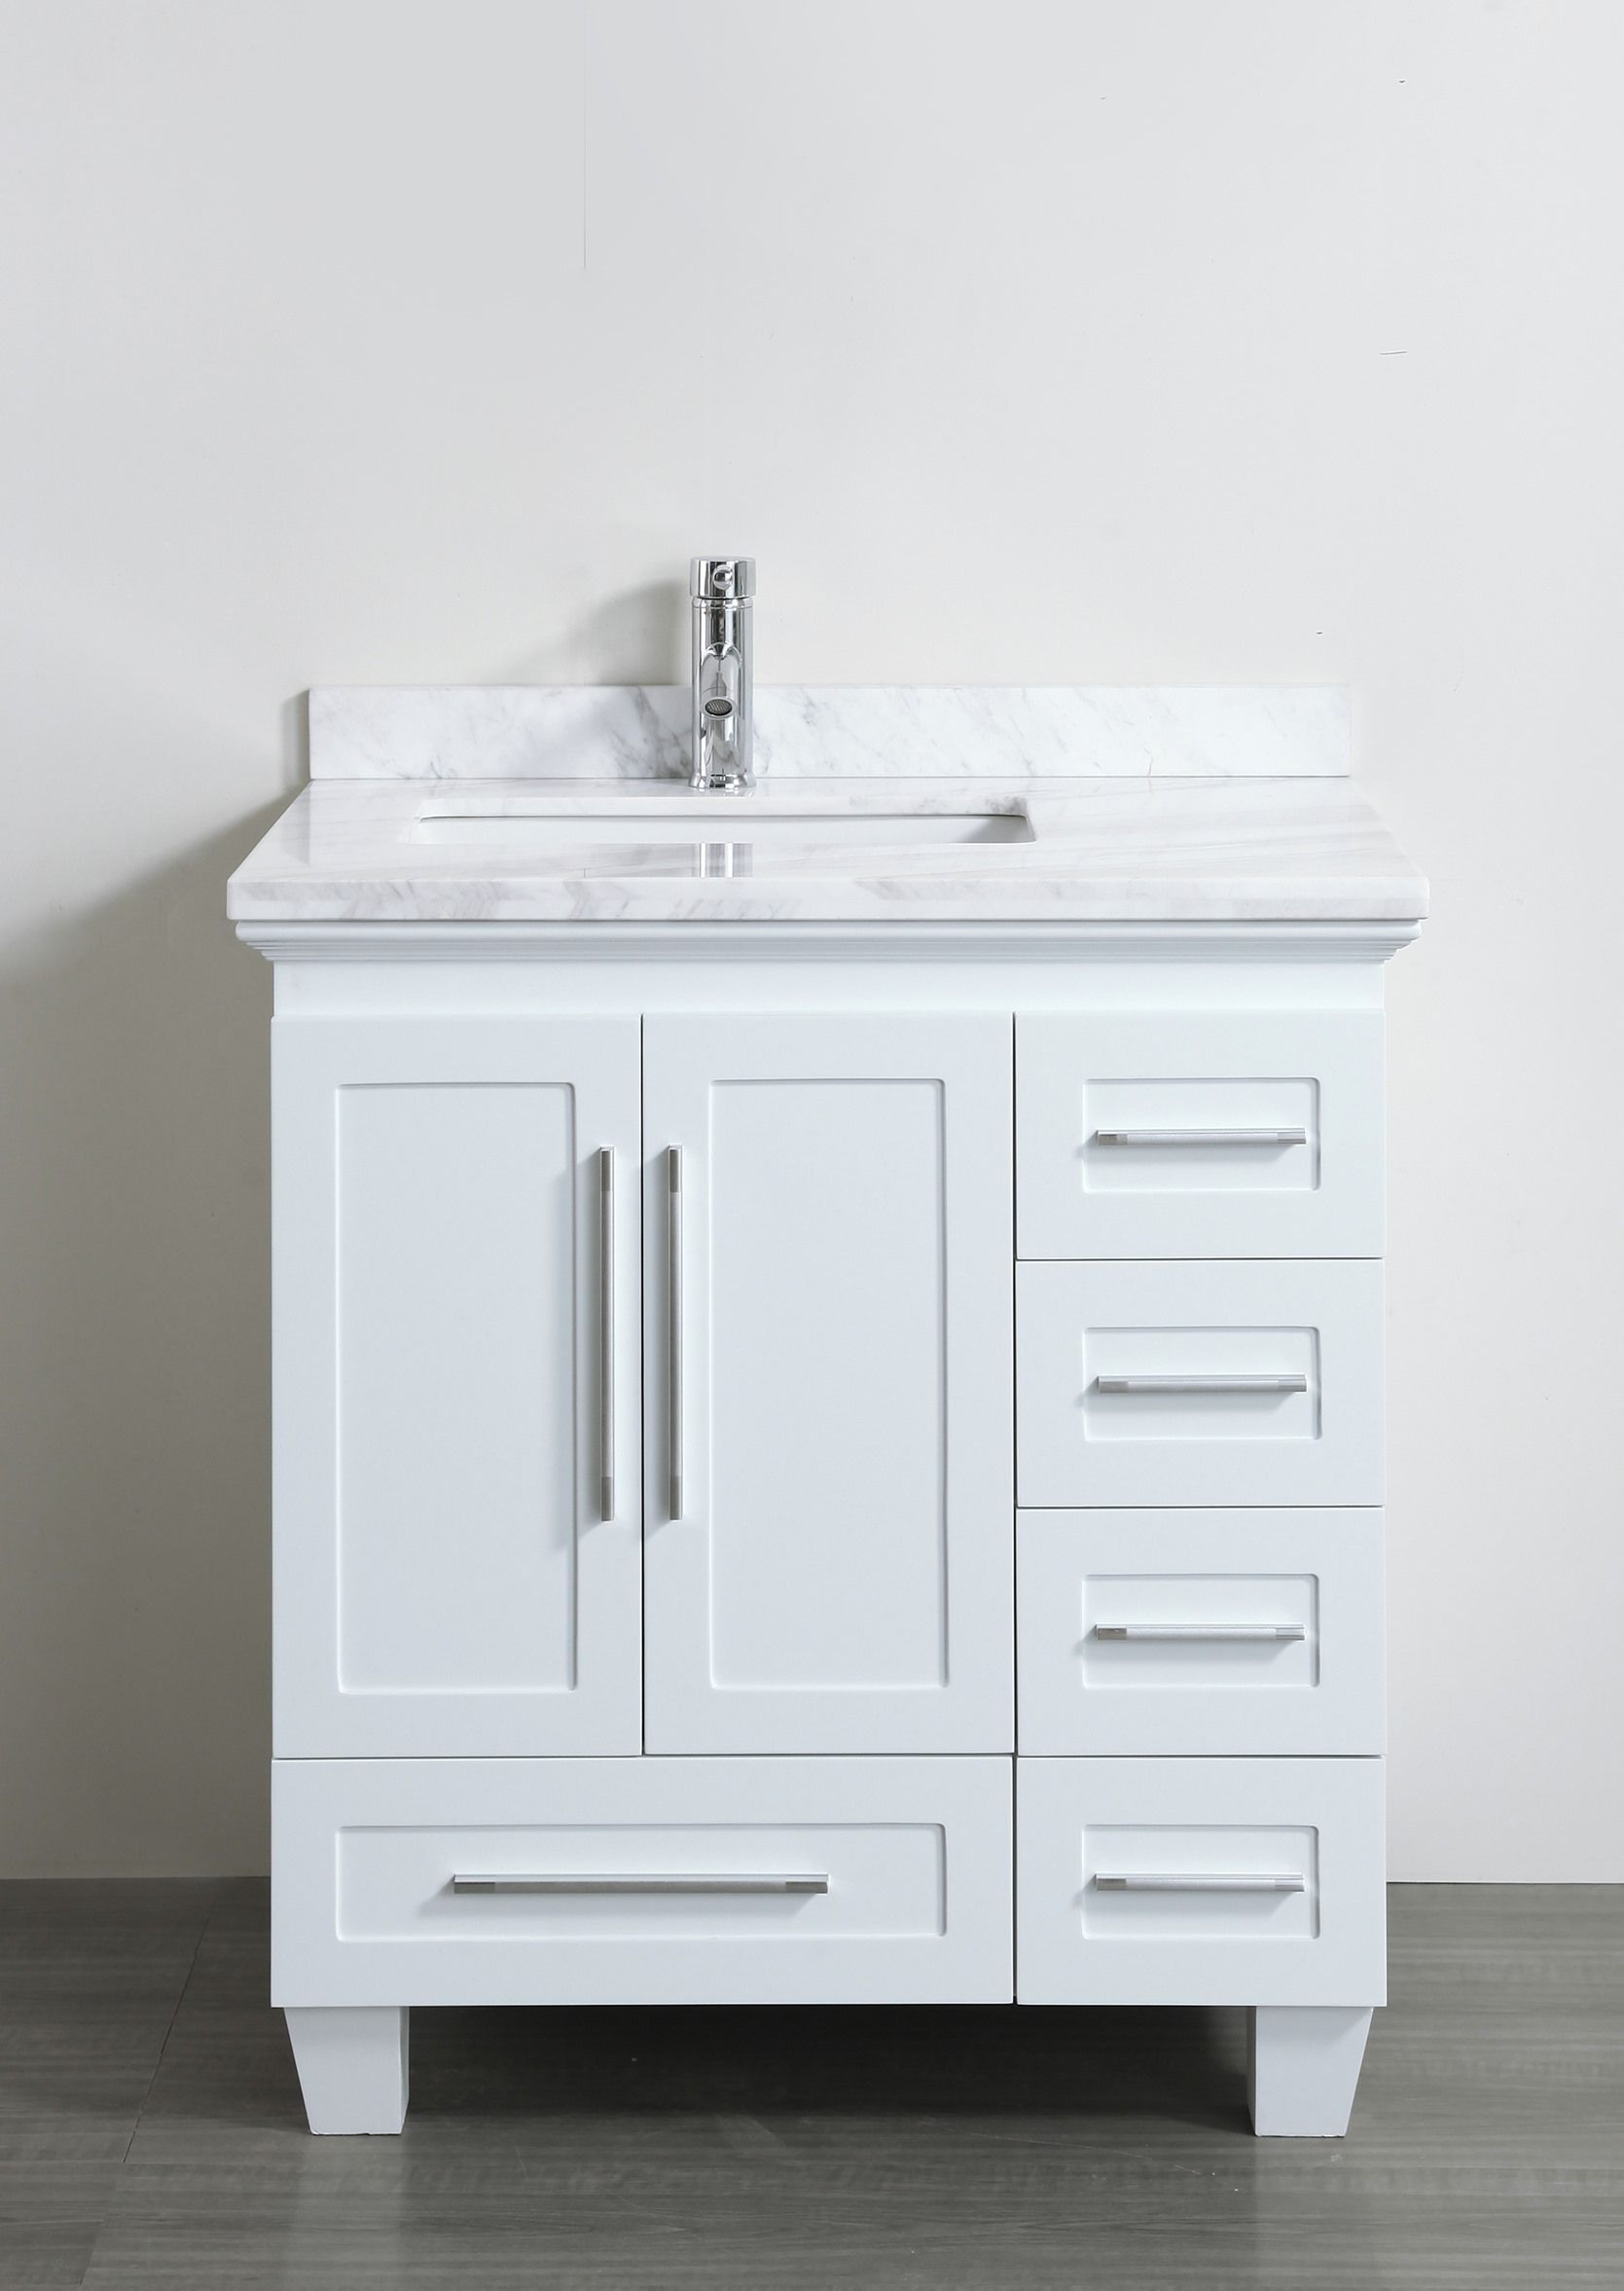 Fascinated In Updating Your Bathroom Vanity To A Dual Vanity